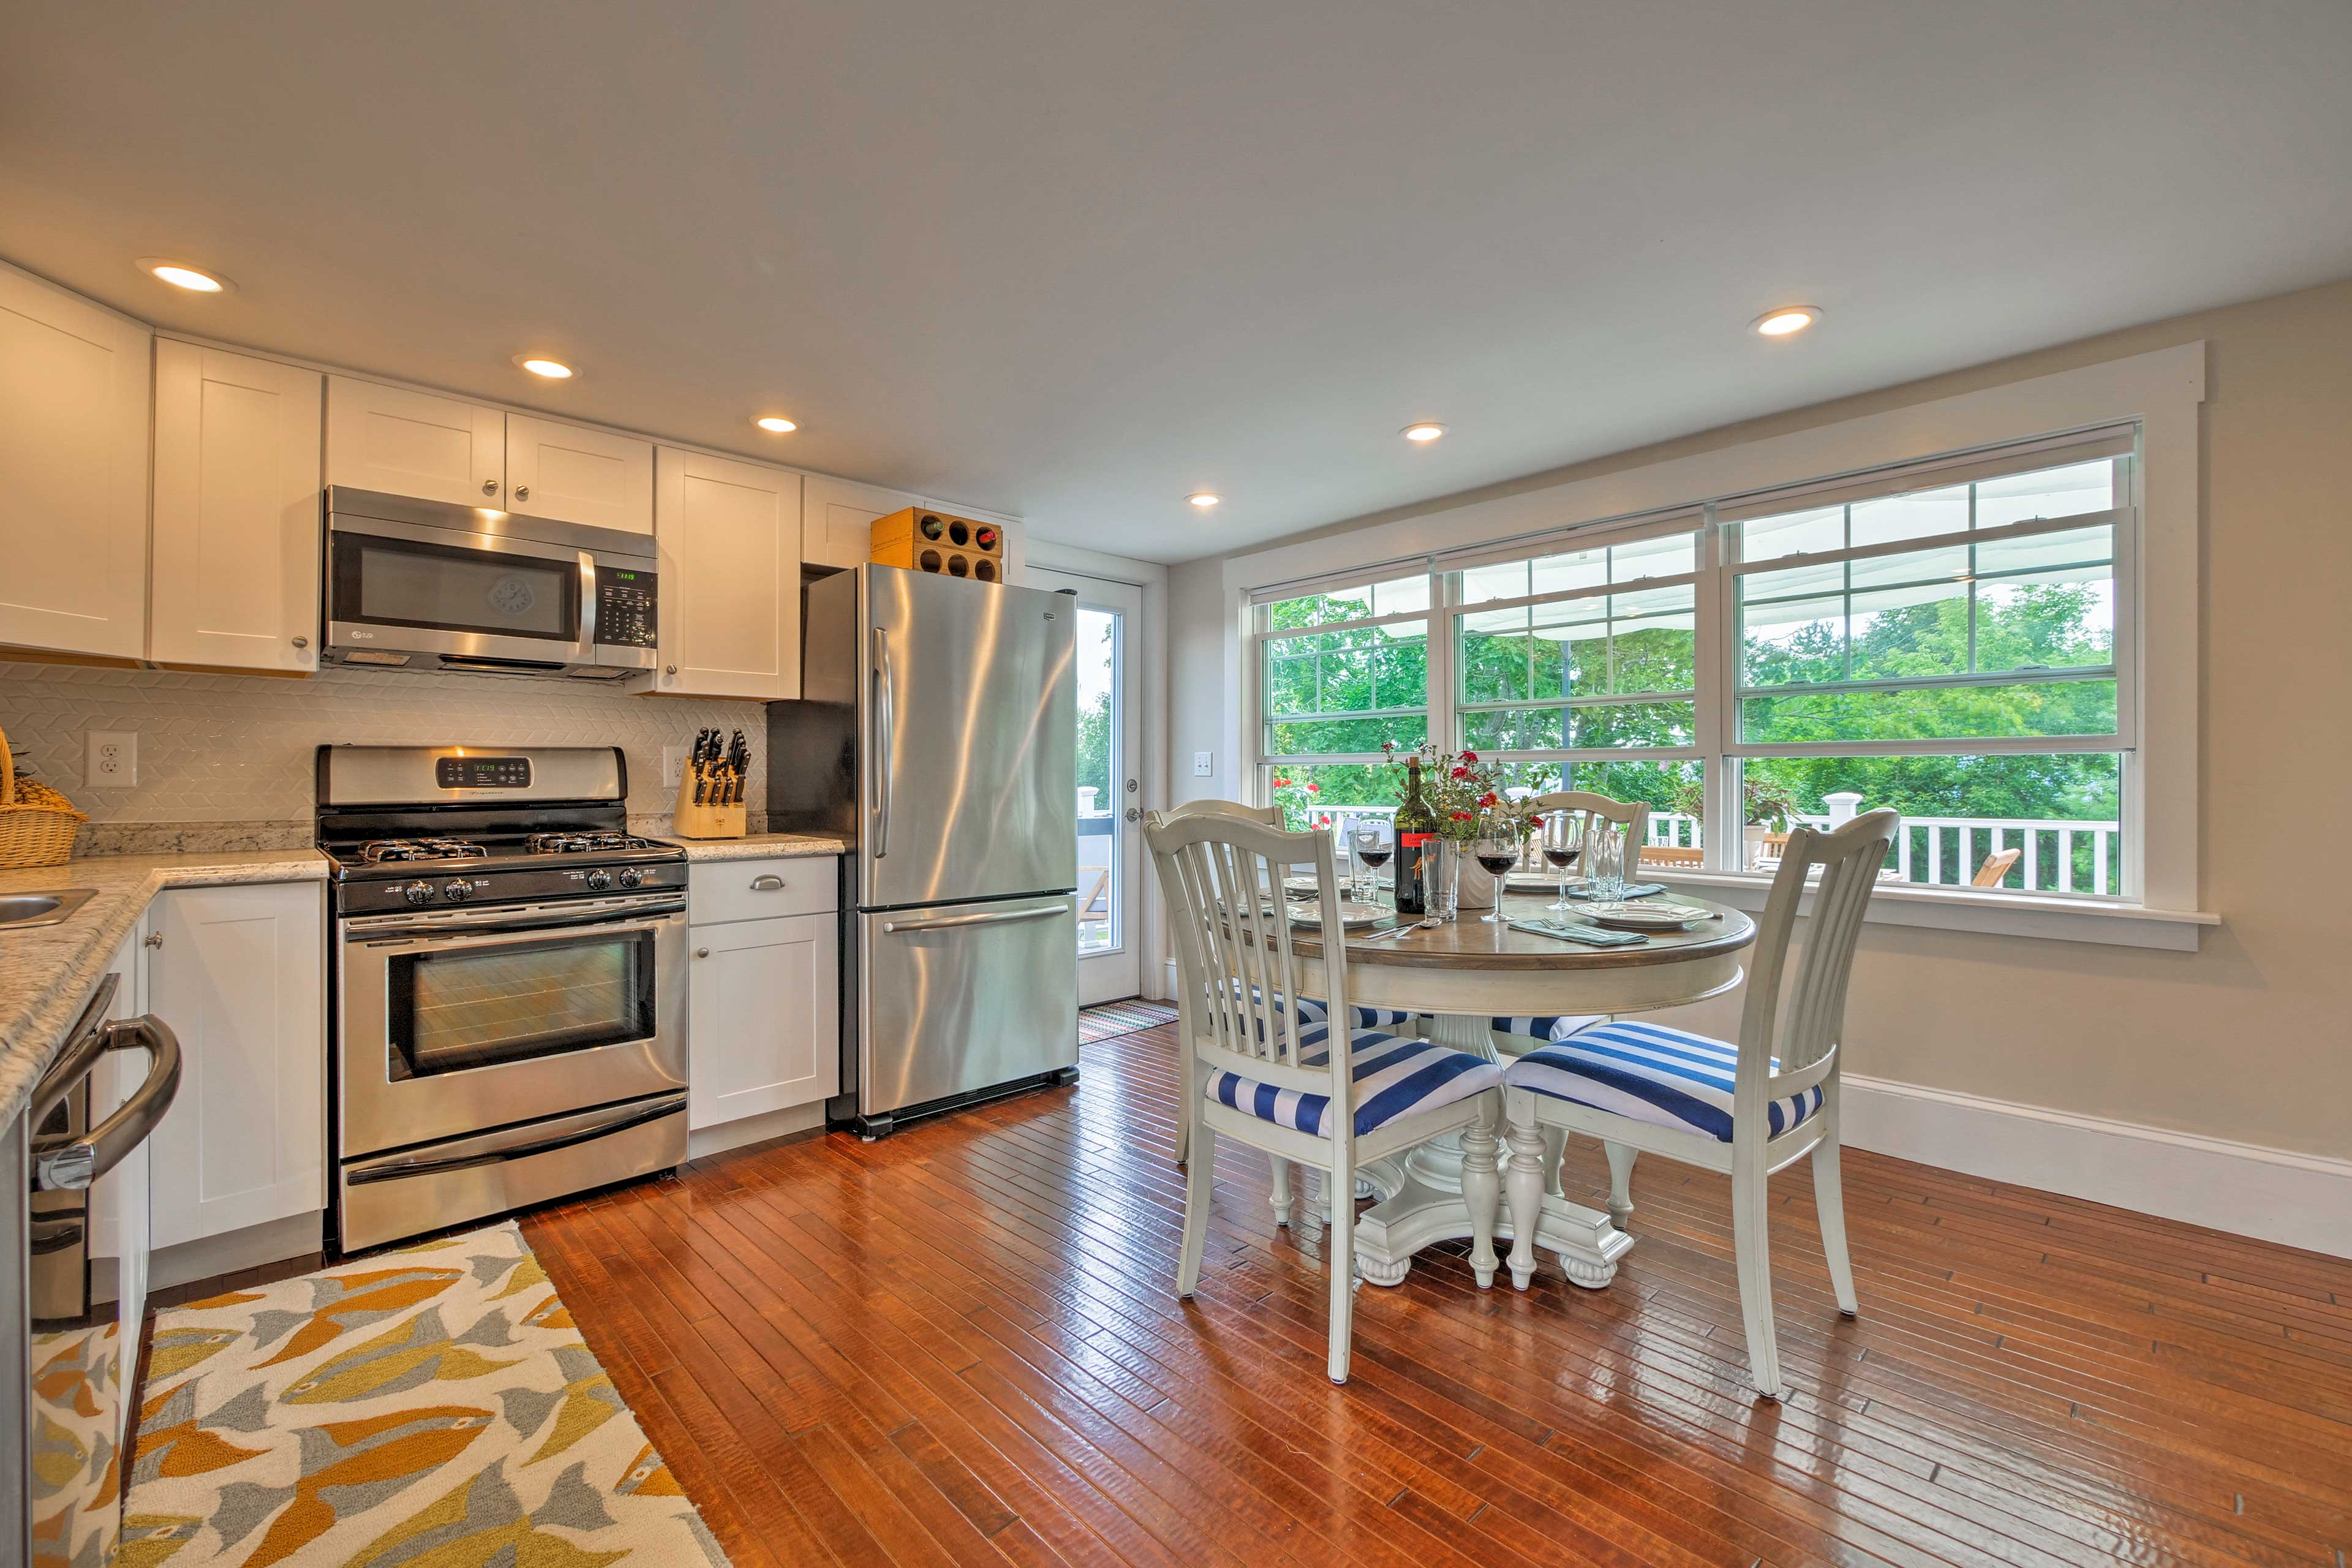 Head into the fully equipped kitchen and dining area.